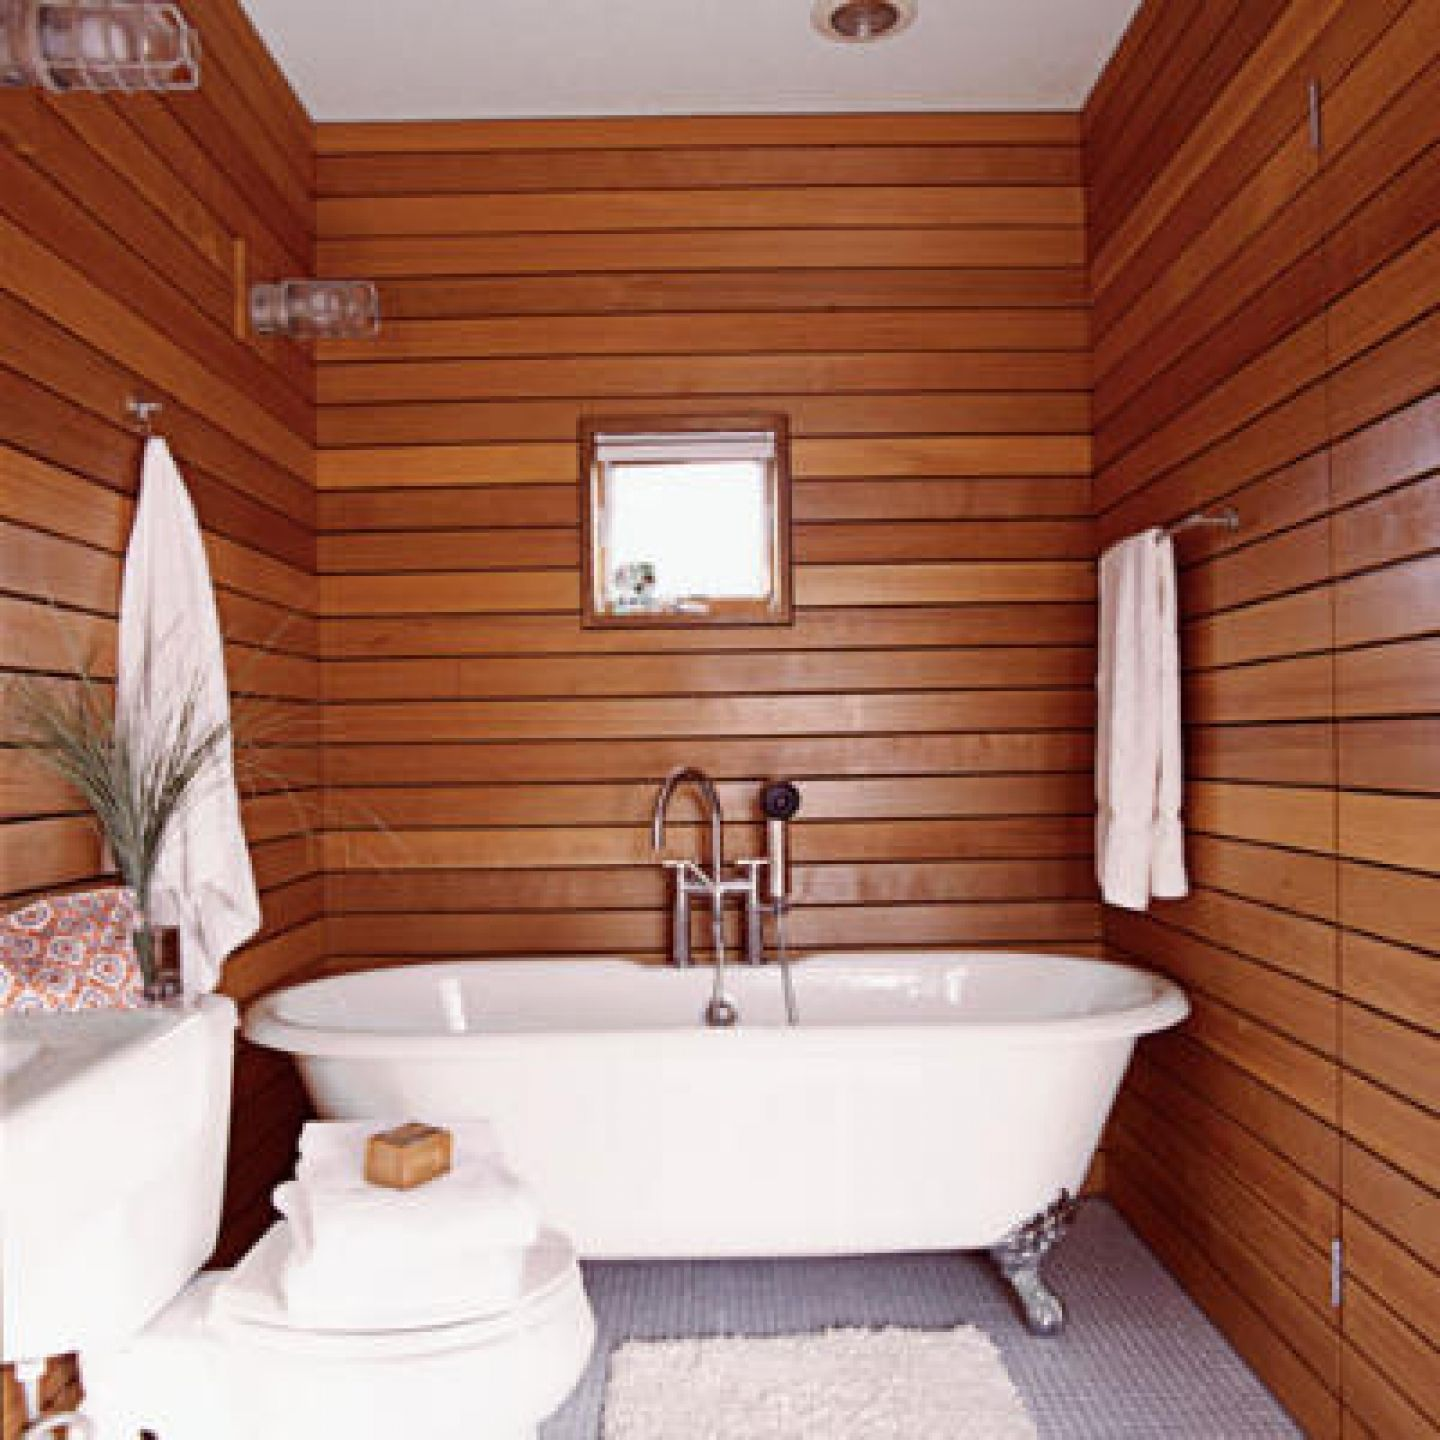 tasty how to decorate a blue bathroom. Bathroom Bathtubs For Small Tasty Fascinating Wooden Wall Design  With White Tub And Photo